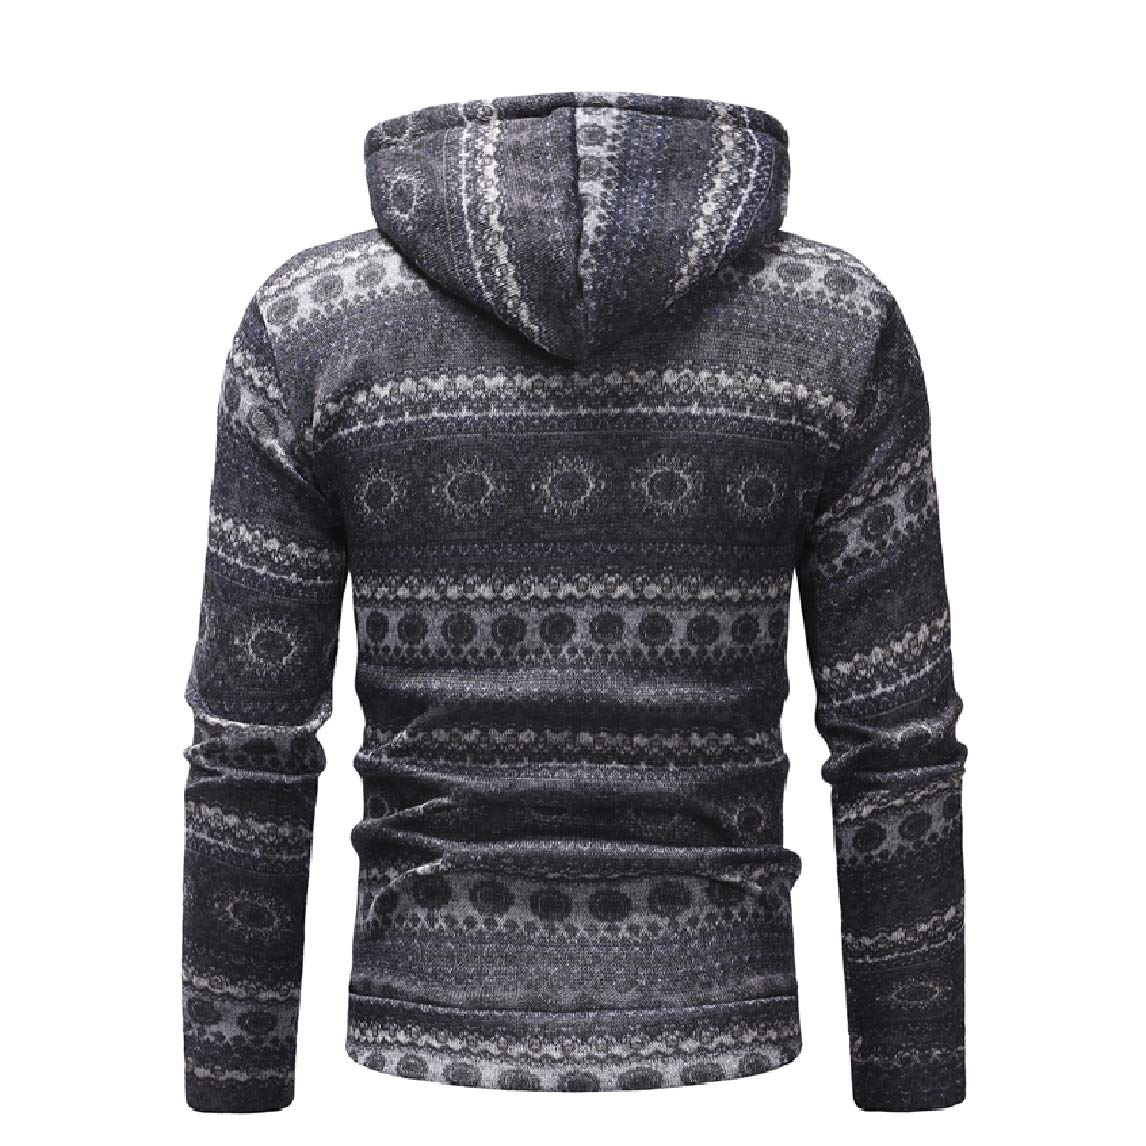 Mfasica Mens Pullover Fashion Relaxed-Fit Printing Pocket Pullover